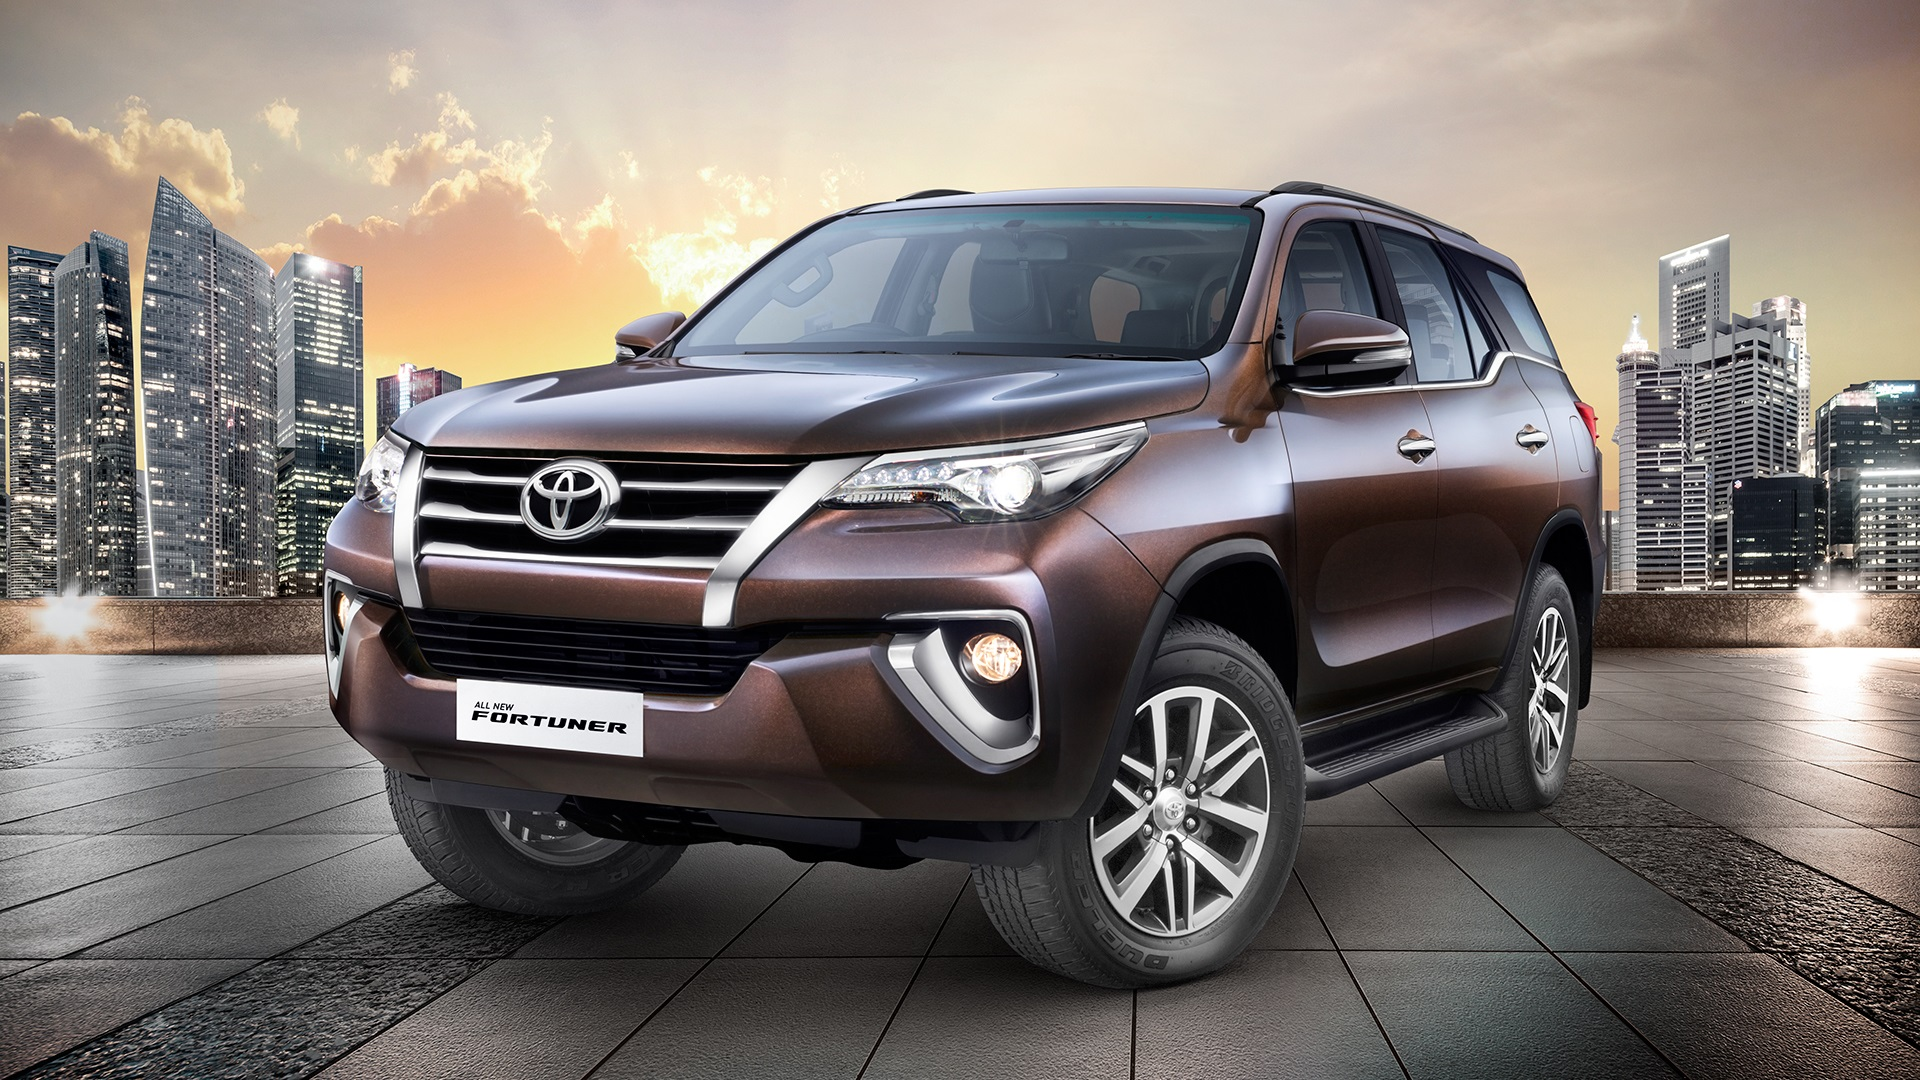 all-new-fortuner-with-toyota-genuine-accessories